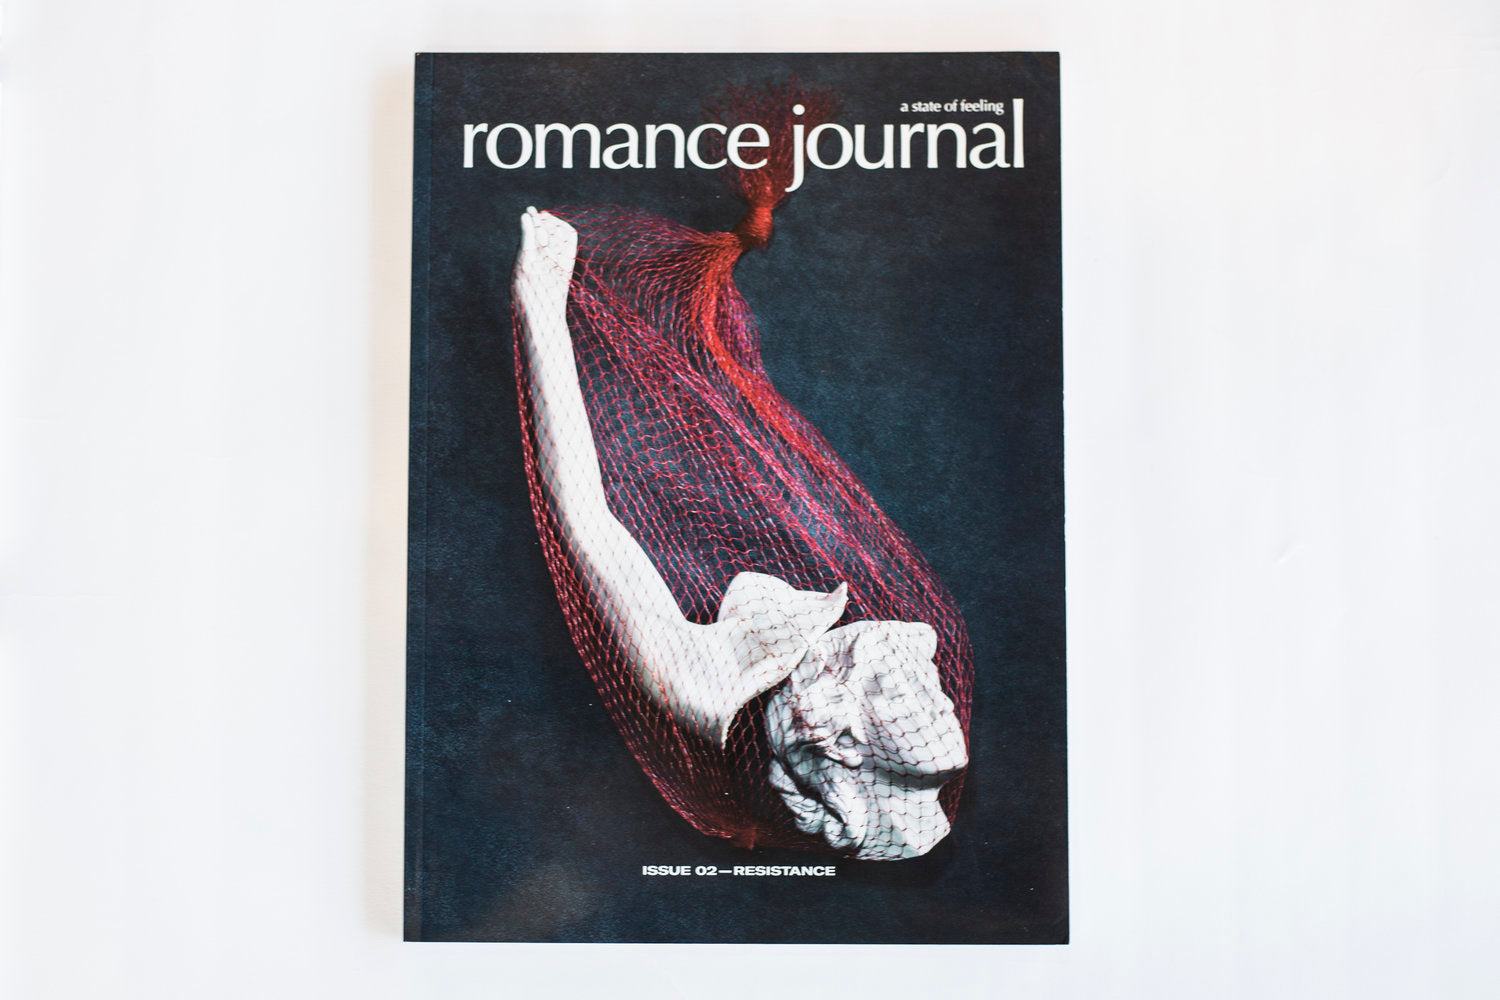 Romance Journal Issue, 2 Resistance